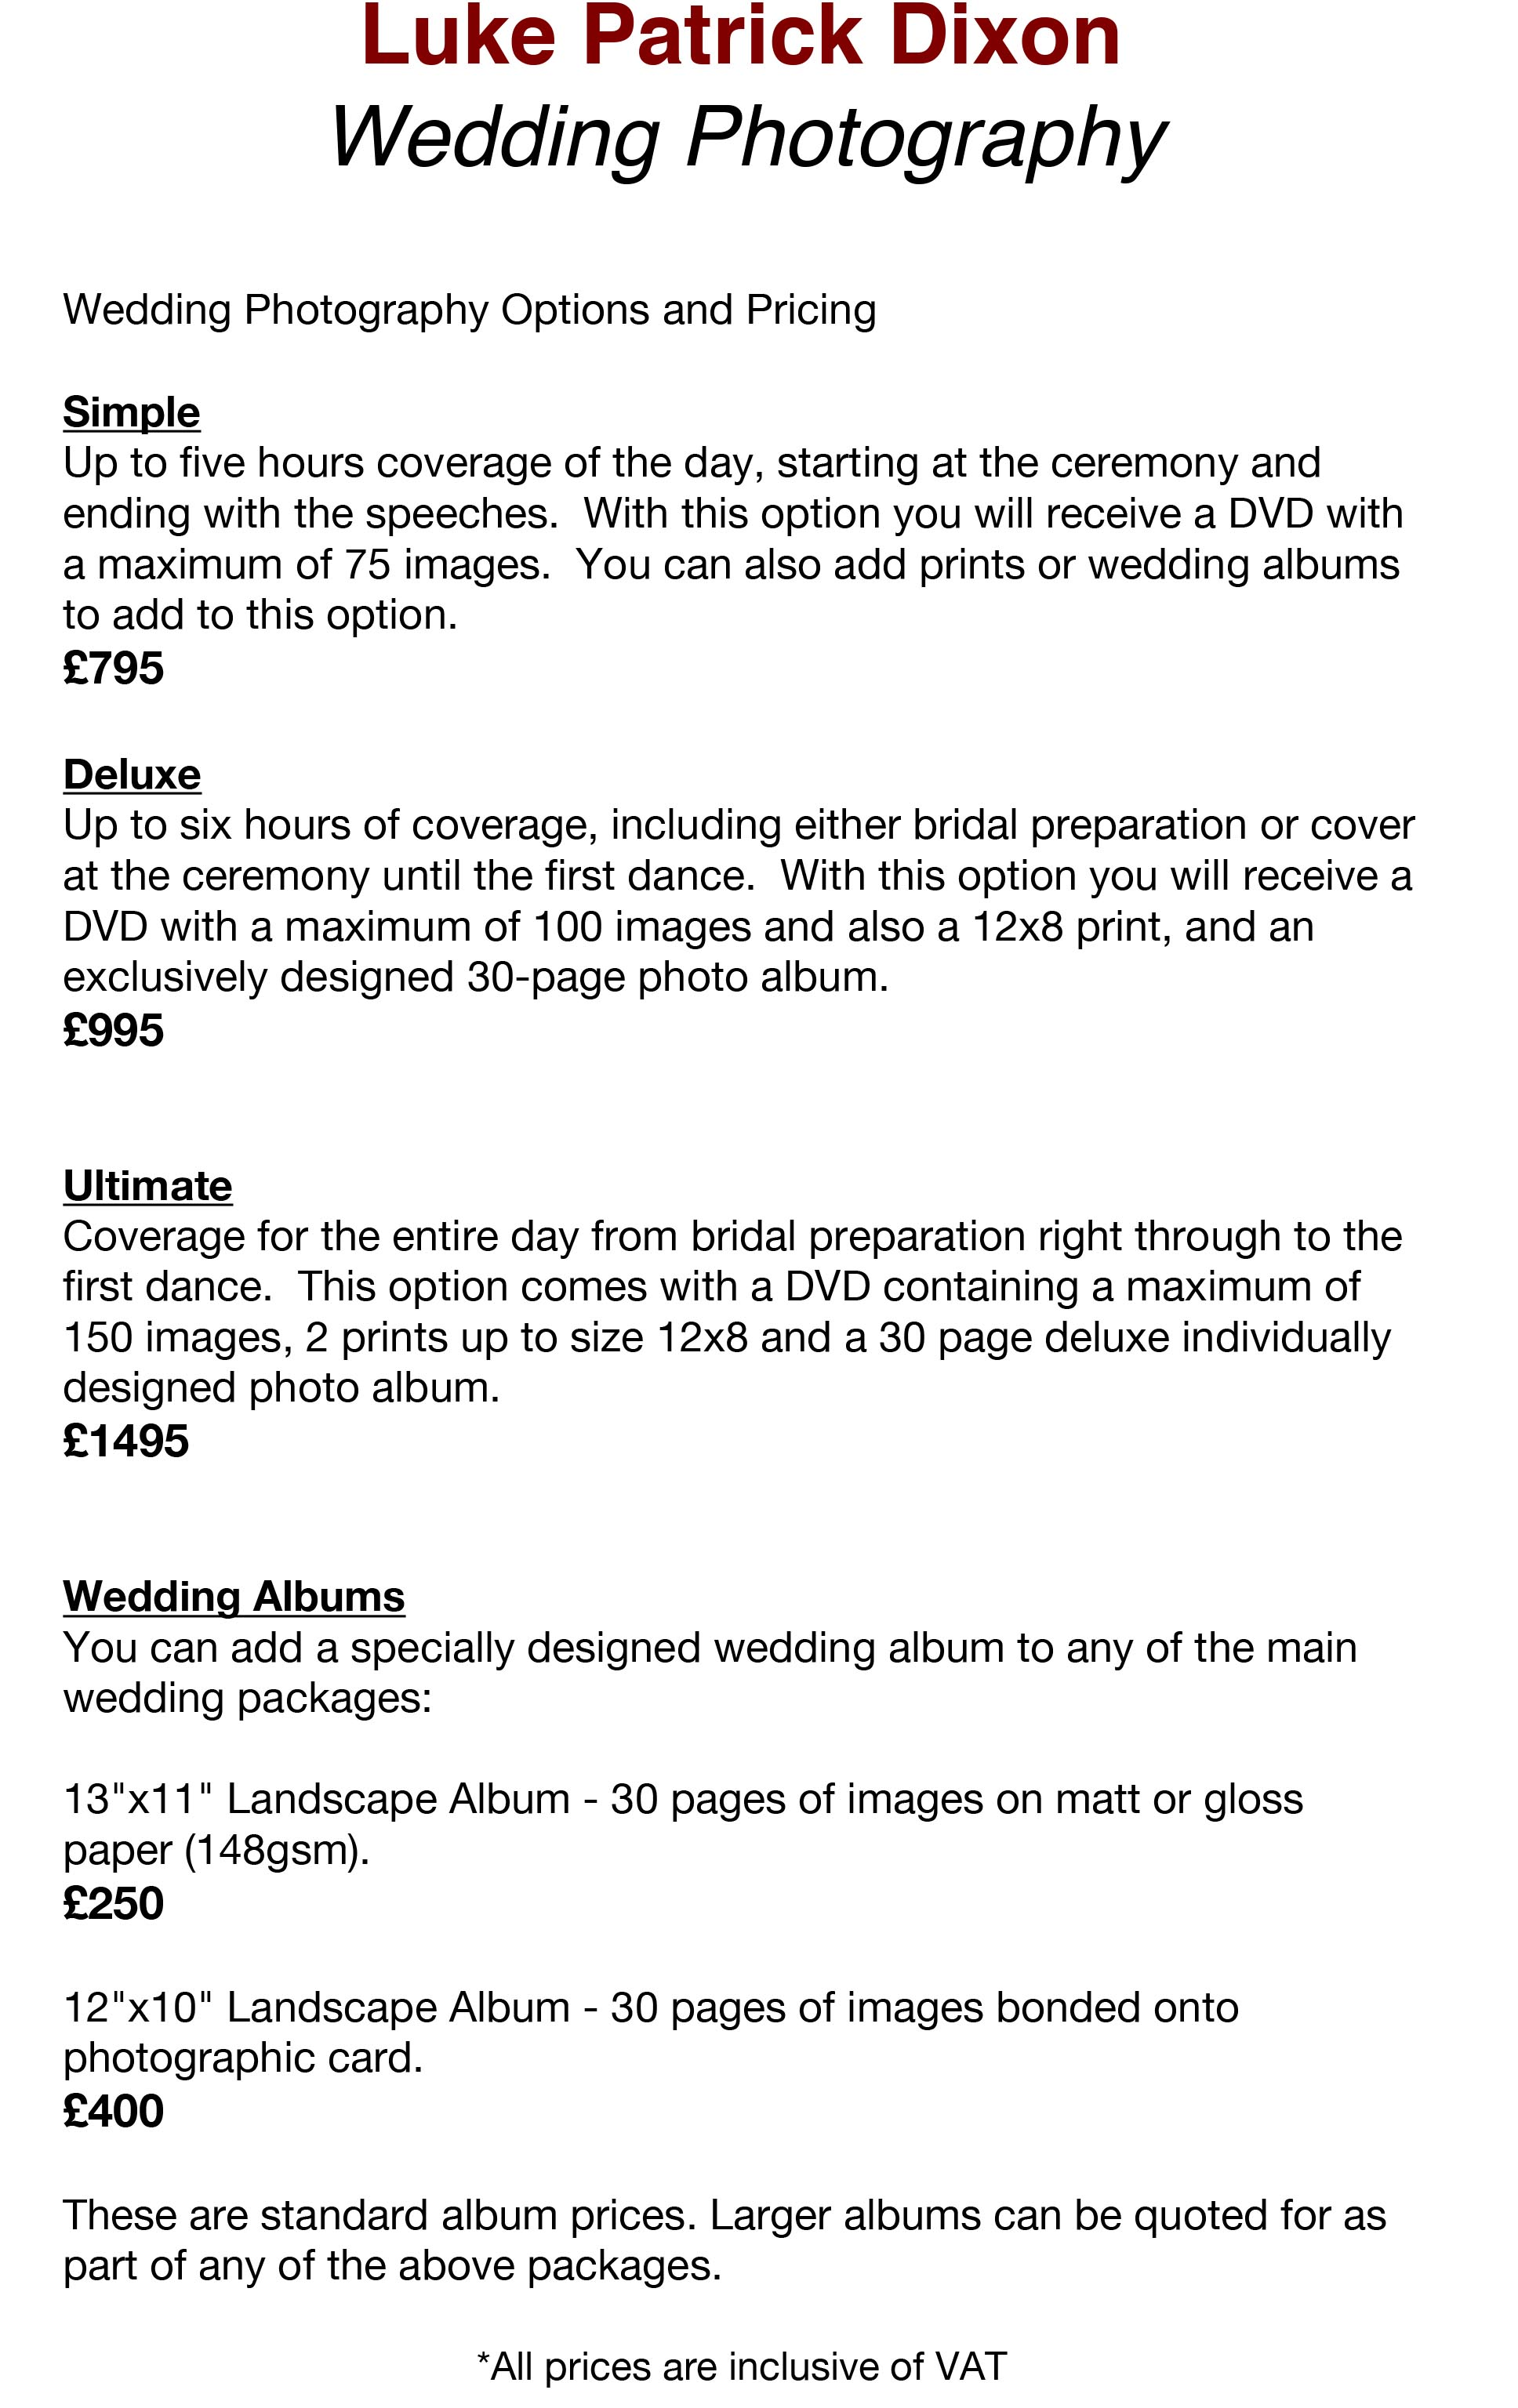 2019-05-22 Wedding Prices 2019.jpg